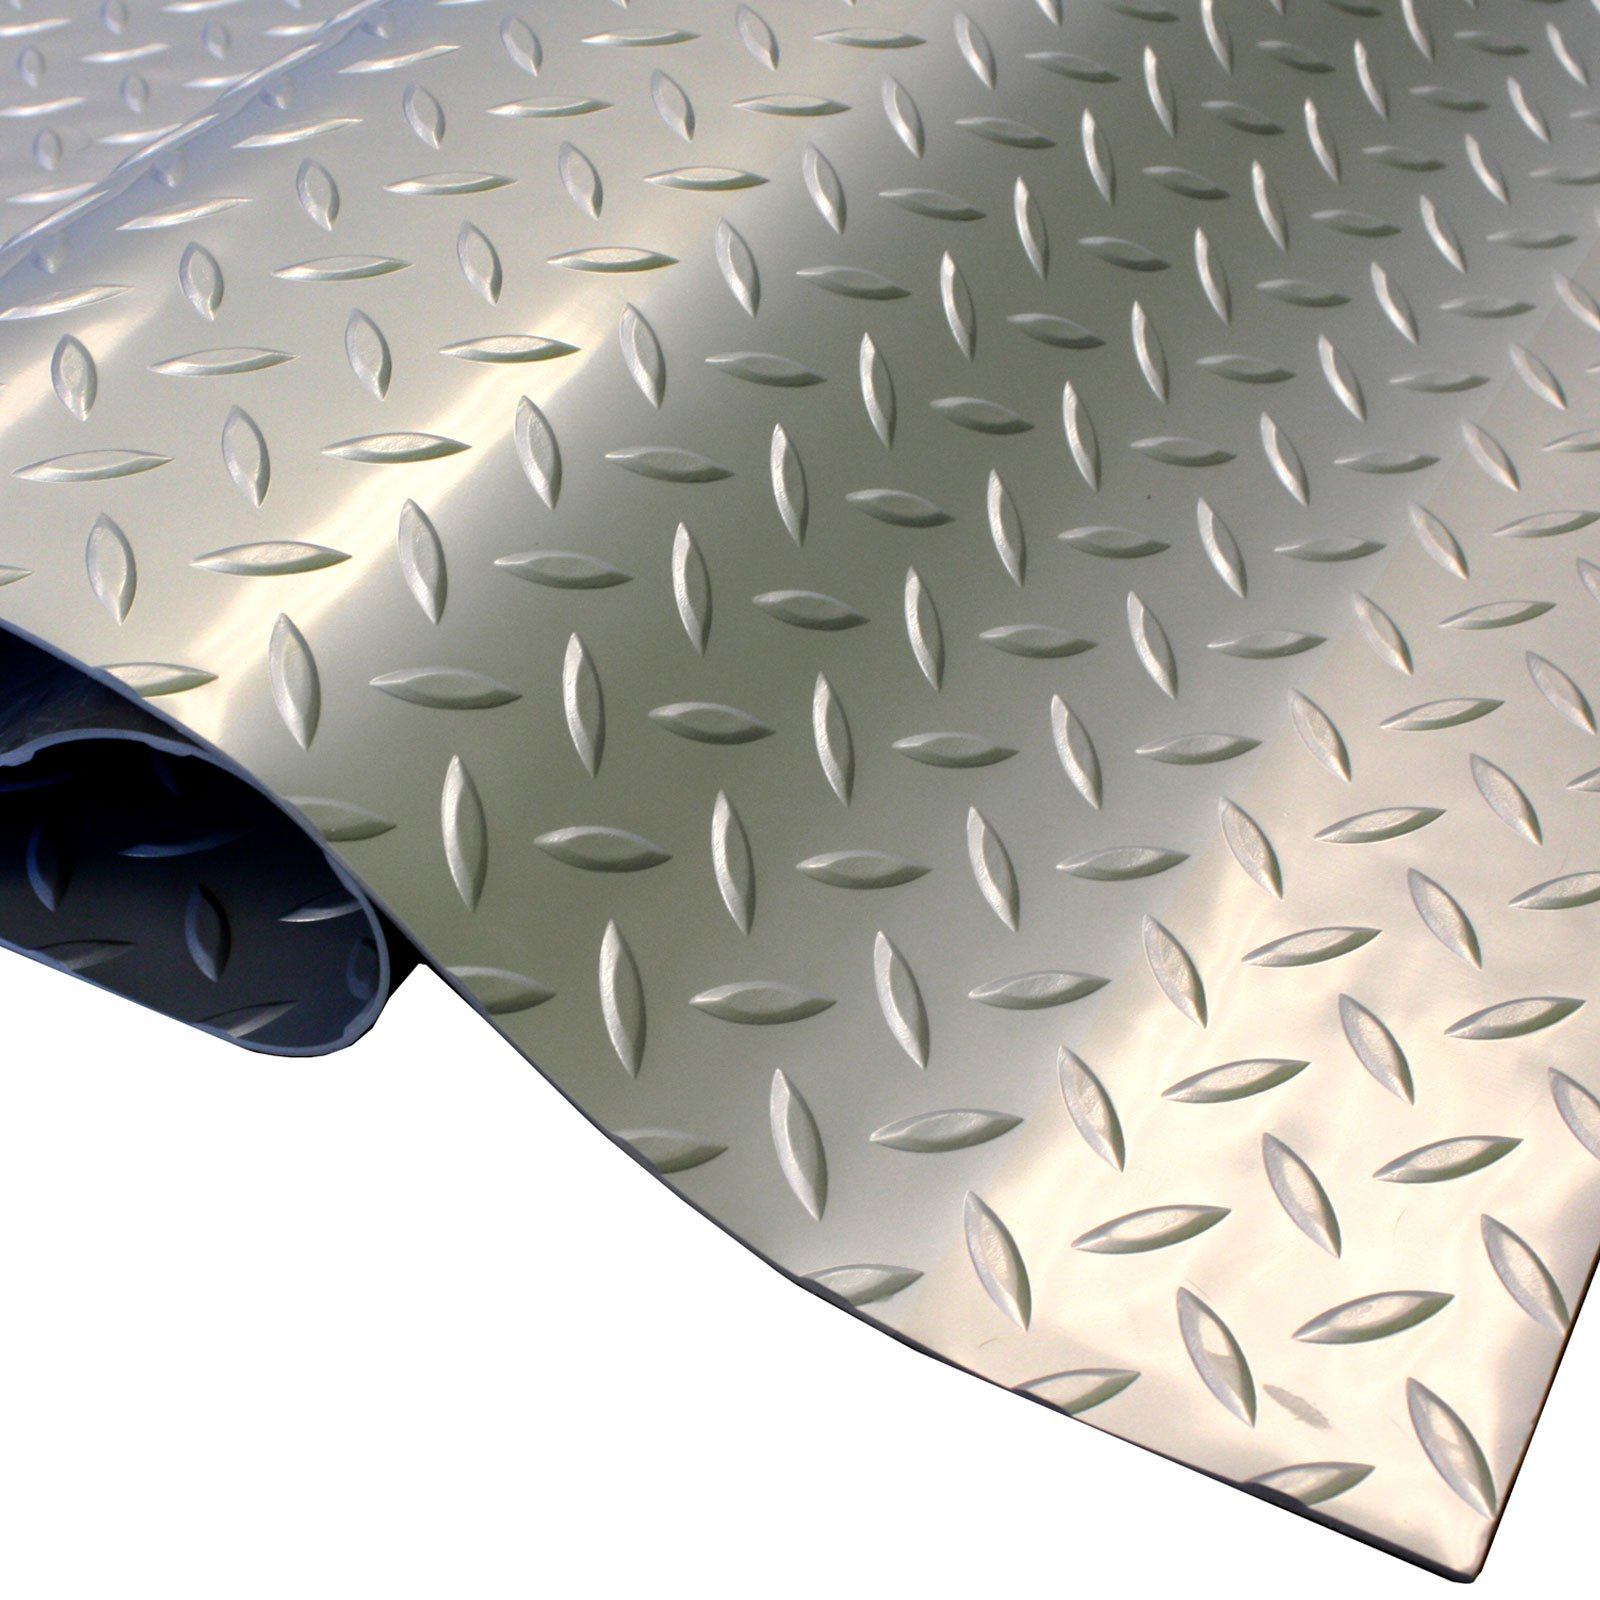 IncStores Standard Grade Nitro Garage Flooring (5' x 7.5', Diamond Stainless Steel) Roll Out Floor Protecting Mats by IncStores (Image #3)